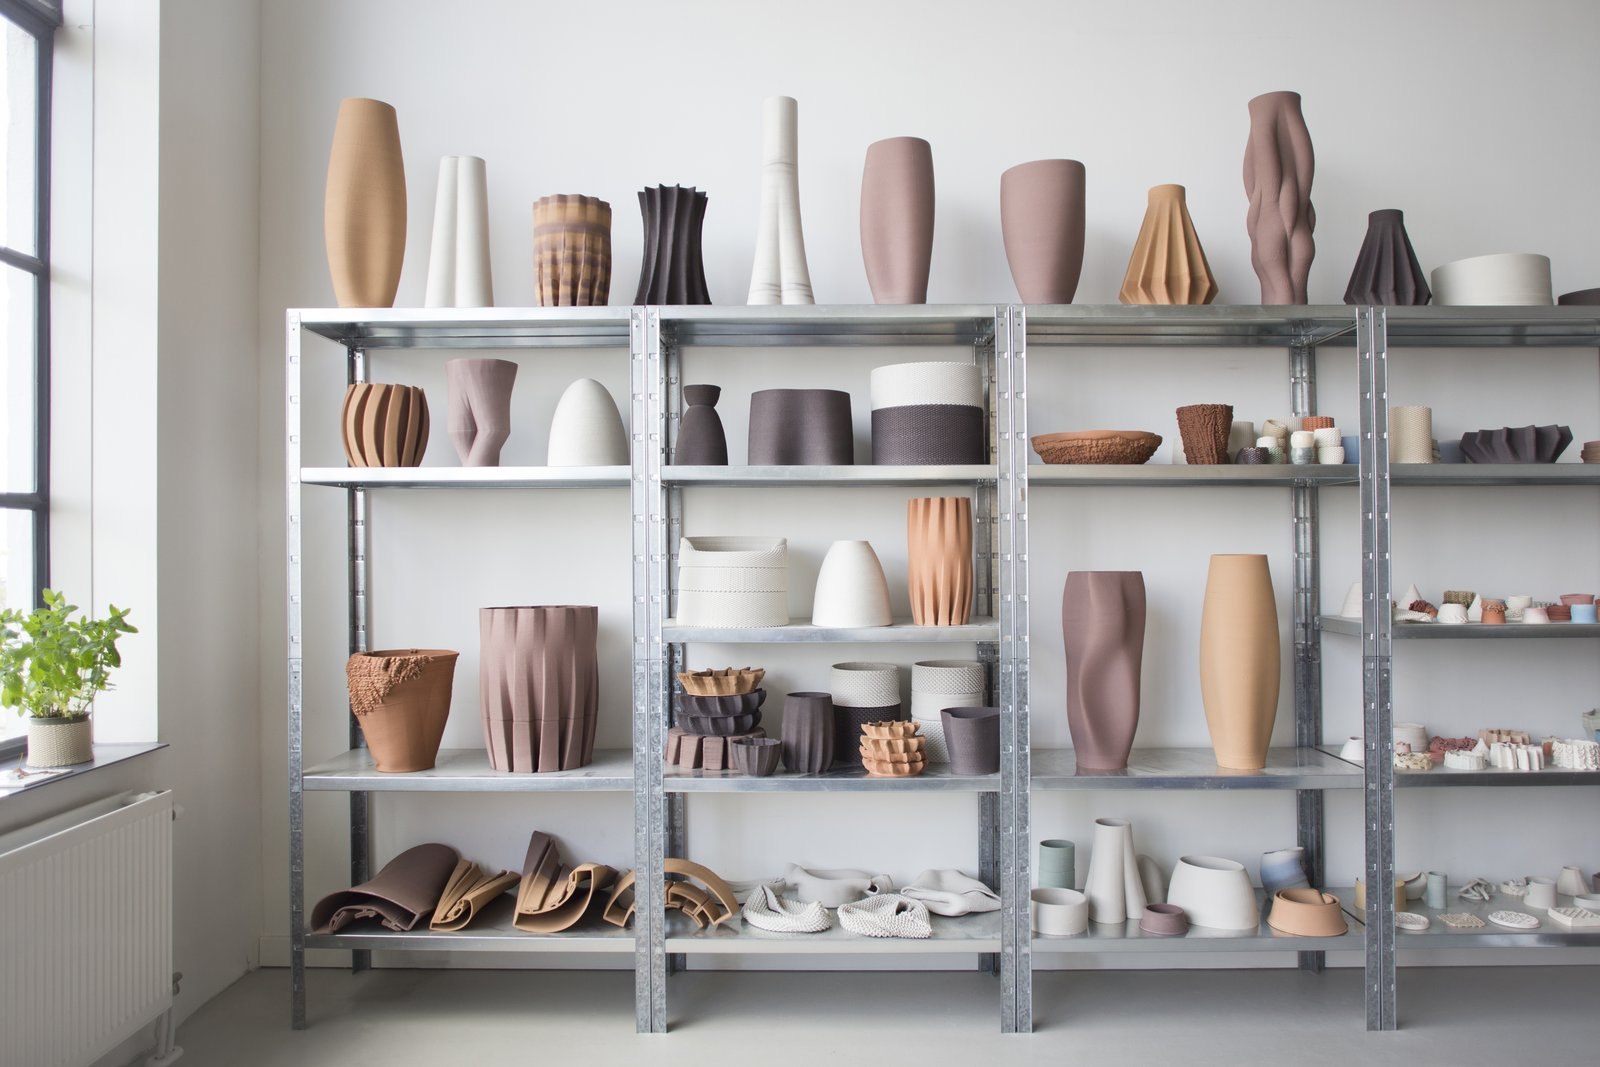 This year's New Material Award prize goes to Olivier van Herpt, who designed and built a 3D printer that can deposit layers of undiluted clay with fine detail.   newmaterialaward.nl  From the Editors' Inbox: October 2016